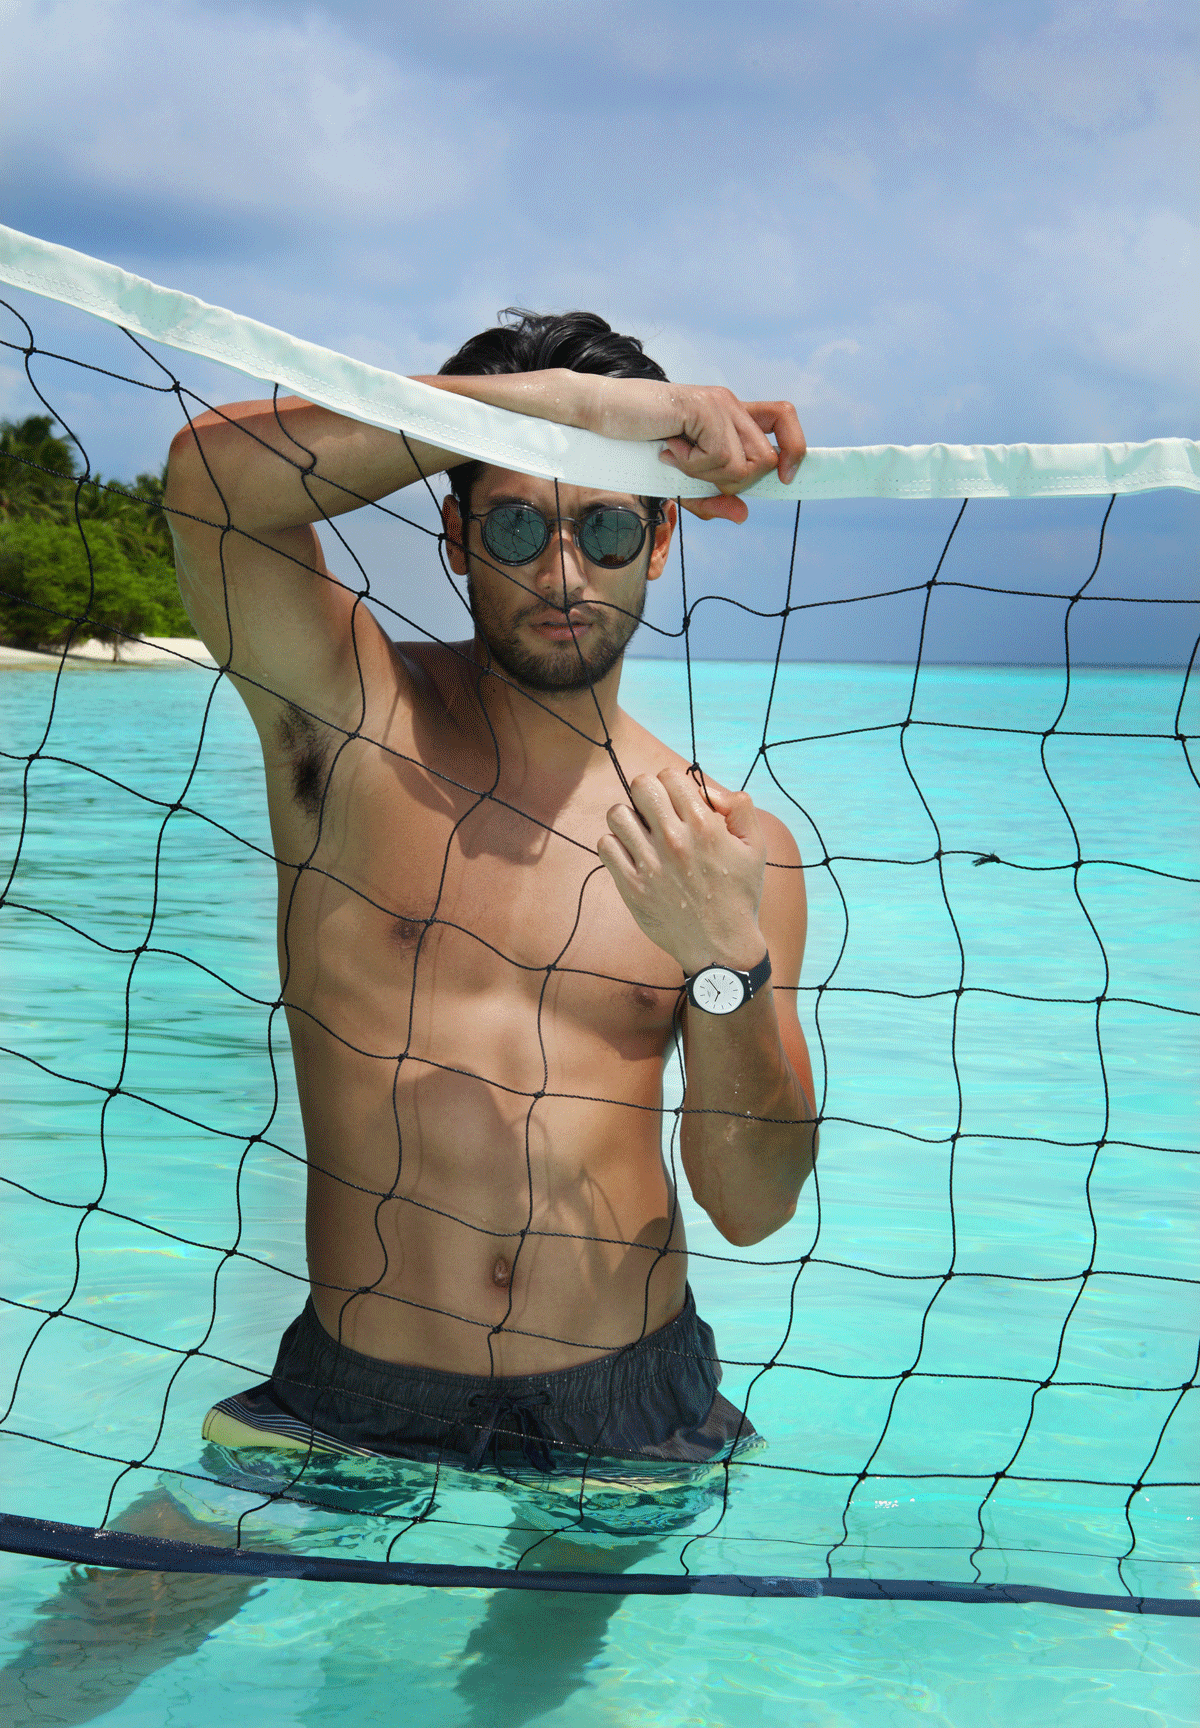 shorts : Quiksilver / sunglasses : TAVAT / watch : SWATCH skinnoir